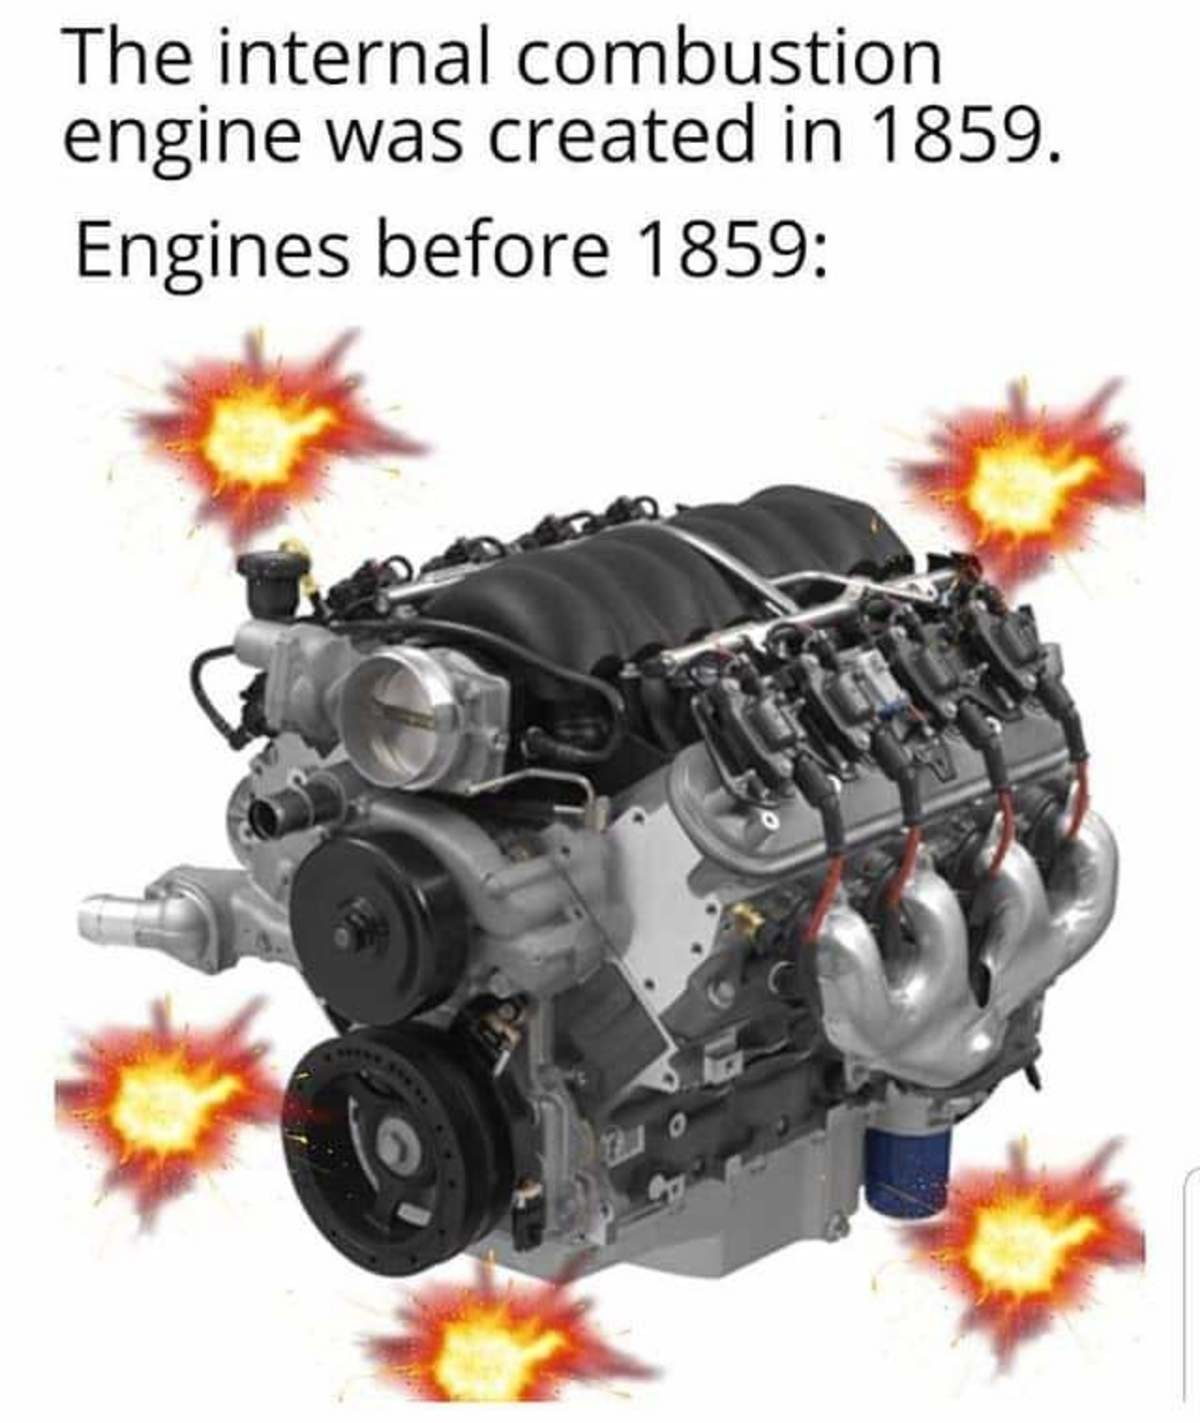 External combustion. .. The external combustion engine